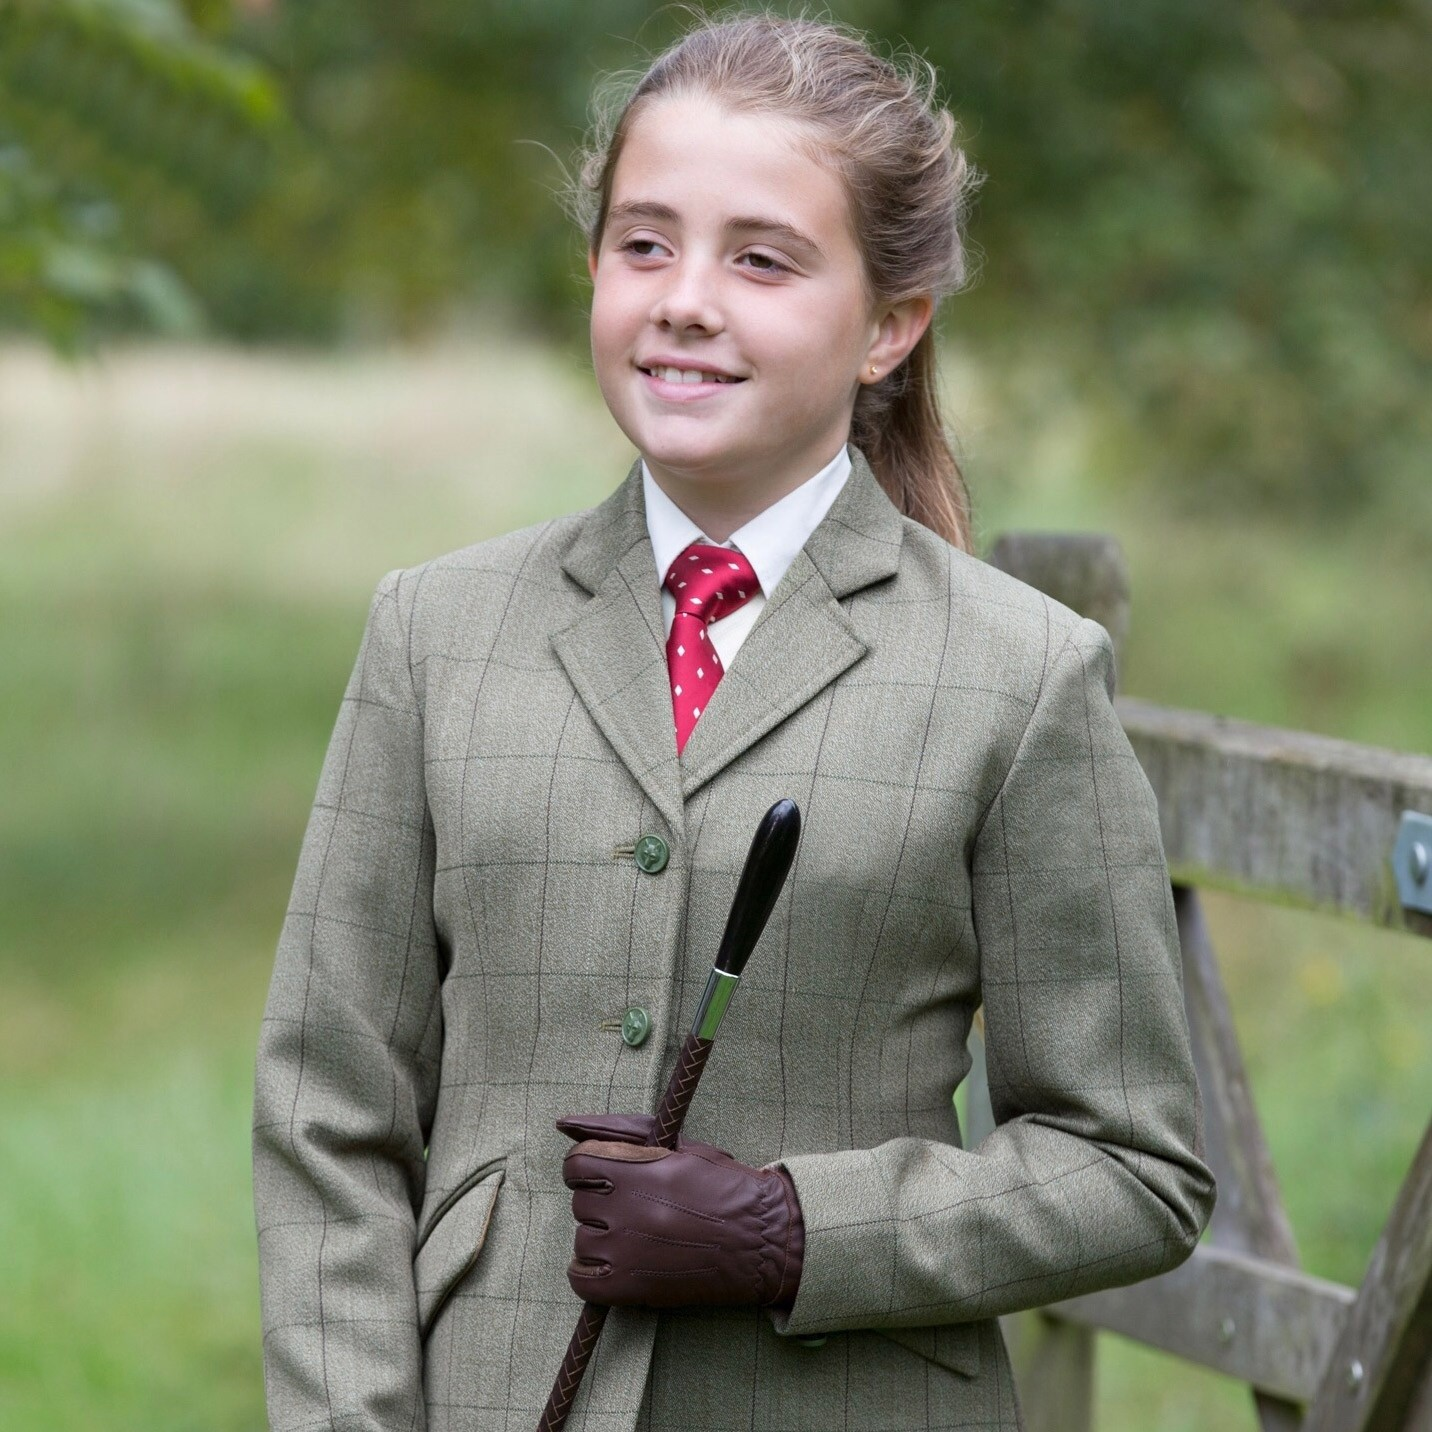 Equetech Junior Foxbury Tweed Riding Jacket  - Thomas Irving's equestrian and accessories store  Equetech Junior Foxbury Tweed Riding Jacket